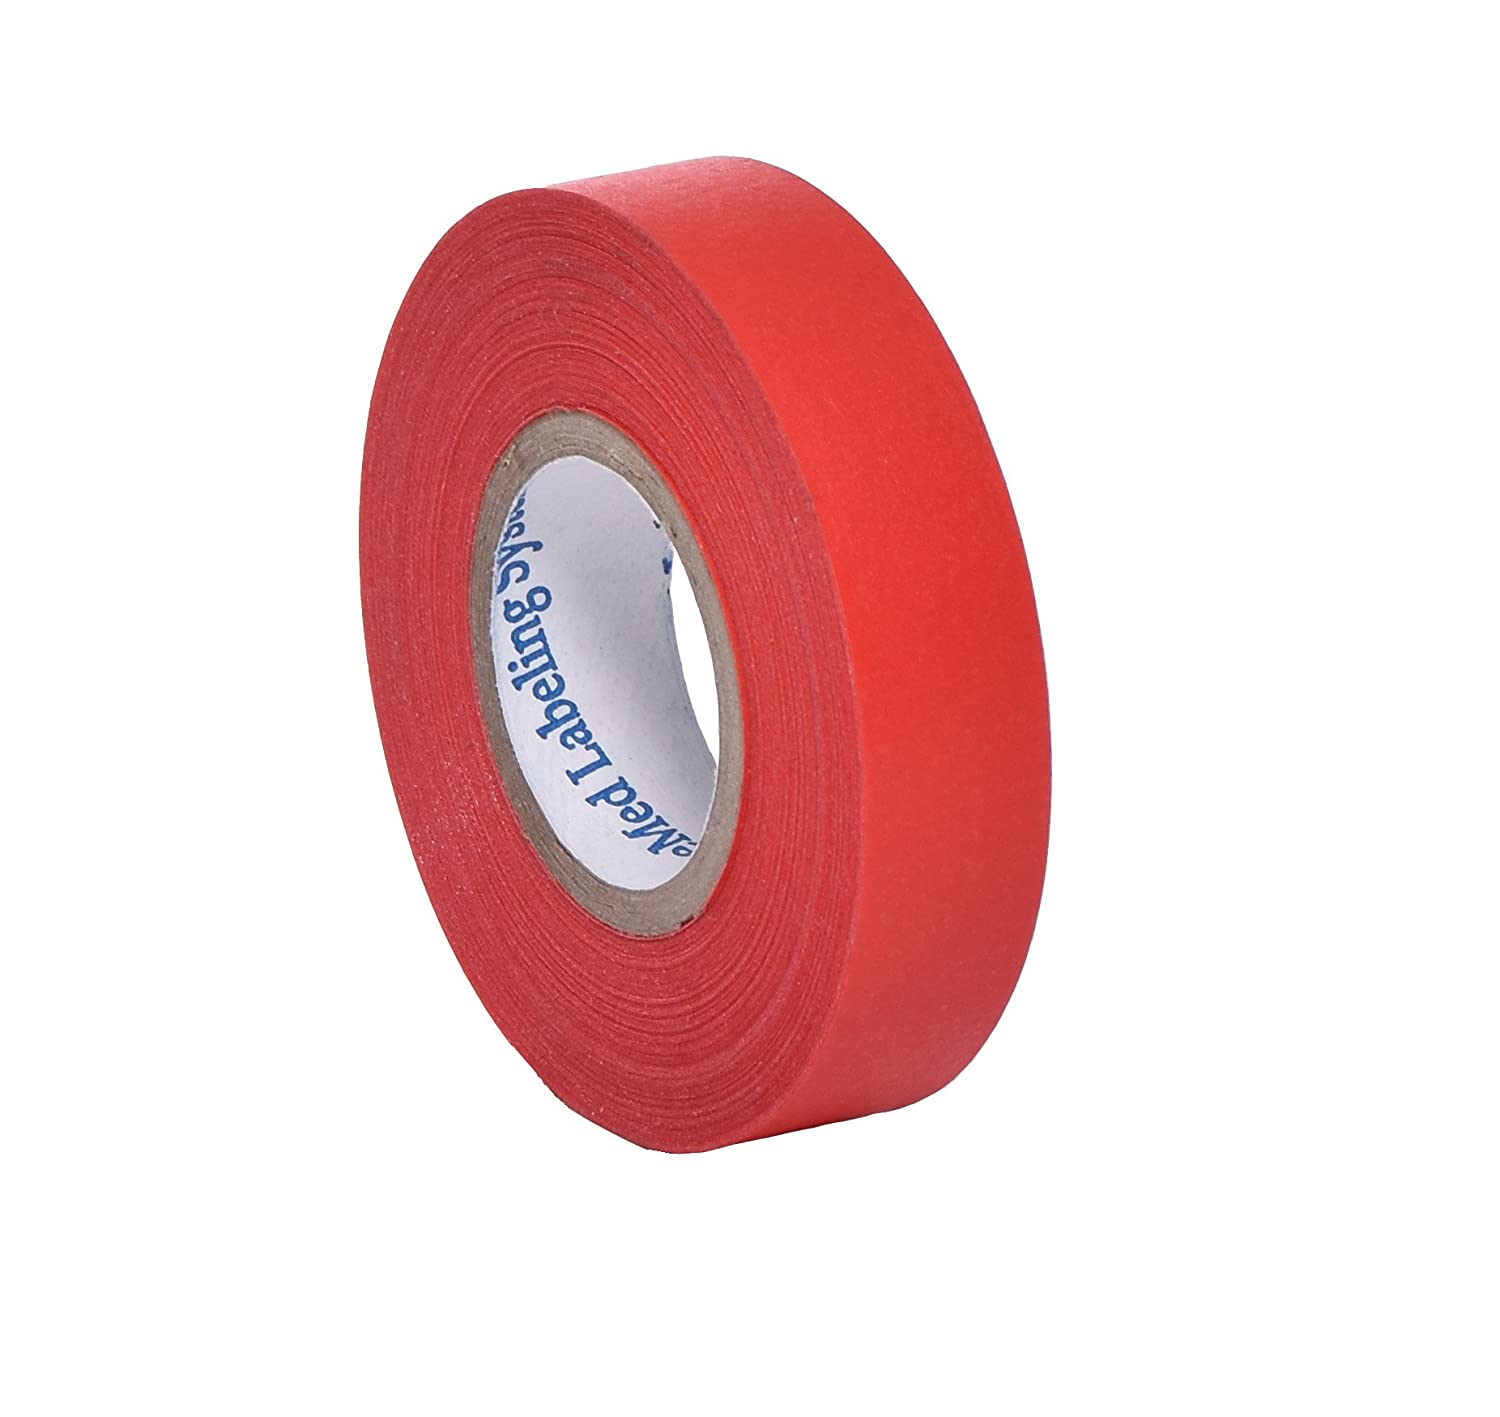 Camlab 1151389 Labelling Tape 1//2 Wide Long 500 12.7 m Blue